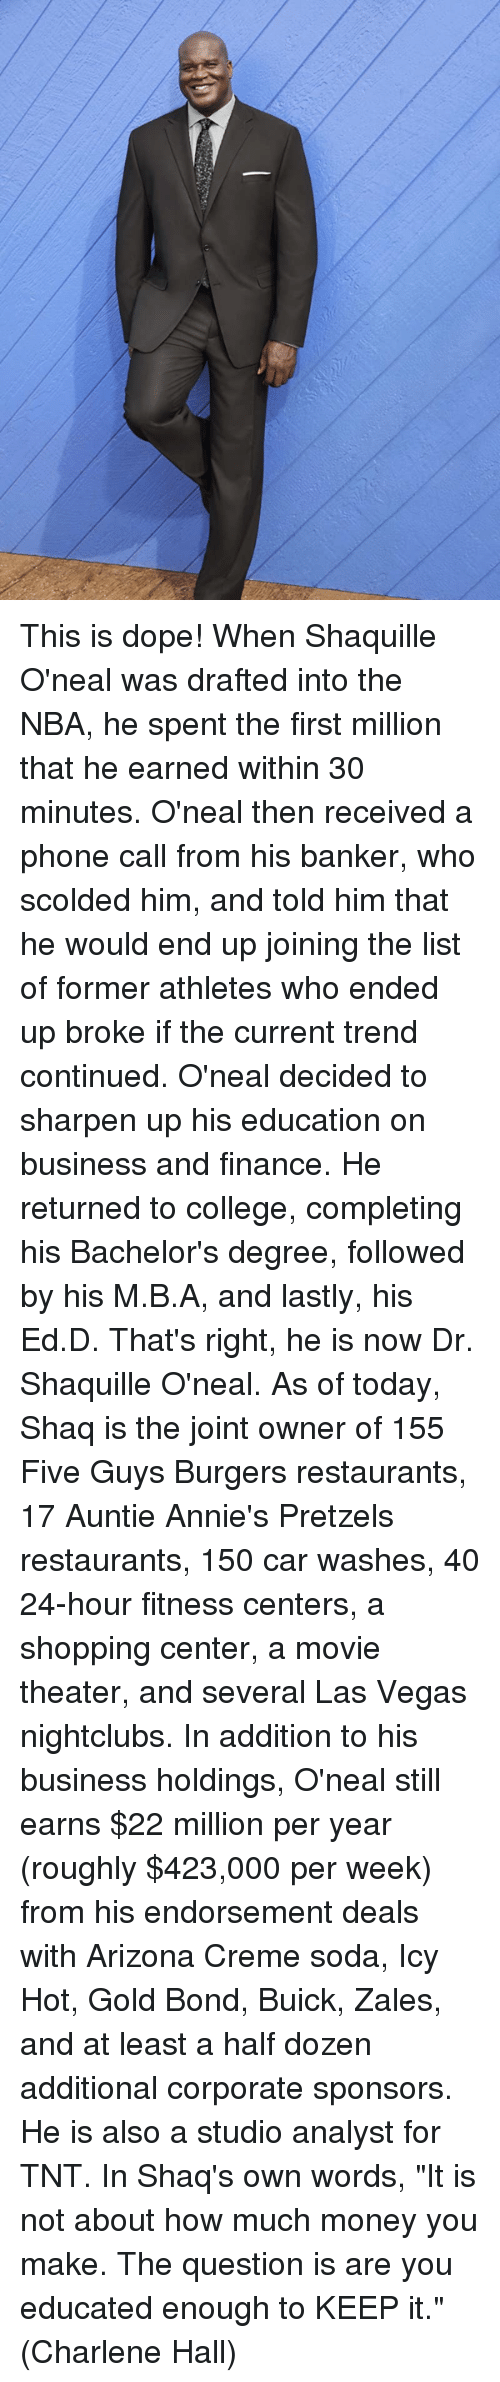 """finance: This is dope!  When Shaquille O'neal was drafted into the NBA, he spent the first million that he earned within 30 minutes. O'neal then received a phone call from his banker, who scolded him, and told him that he would end up joining the list of former athletes who ended up broke if the current trend continued.  O'neal decided to sharpen up his education on business and finance. He returned to college, completing his Bachelor's degree, followed by his M.B.A, and lastly, his Ed.D. That's right, he is now Dr. Shaquille O'neal.  As of today, Shaq is the joint owner of 155 Five Guys Burgers restaurants, 17 Auntie Annie's Pretzels restaurants, 150 car washes, 40 24-hour fitness centers, a shopping center, a movie theater, and several Las Vegas nightclubs.  In addition to his business holdings, O'neal still earns $22 million per year (roughly $423,000 per week) from his endorsement deals with Arizona Creme soda, Icy Hot, Gold Bond, Buick, Zales, and at least a half dozen additional corporate sponsors. He is also a studio analyst for TNT.  In Shaq's own words, """"It is not about how much money you make. The question is are you educated enough to KEEP it.""""  (Charlene Hall)"""